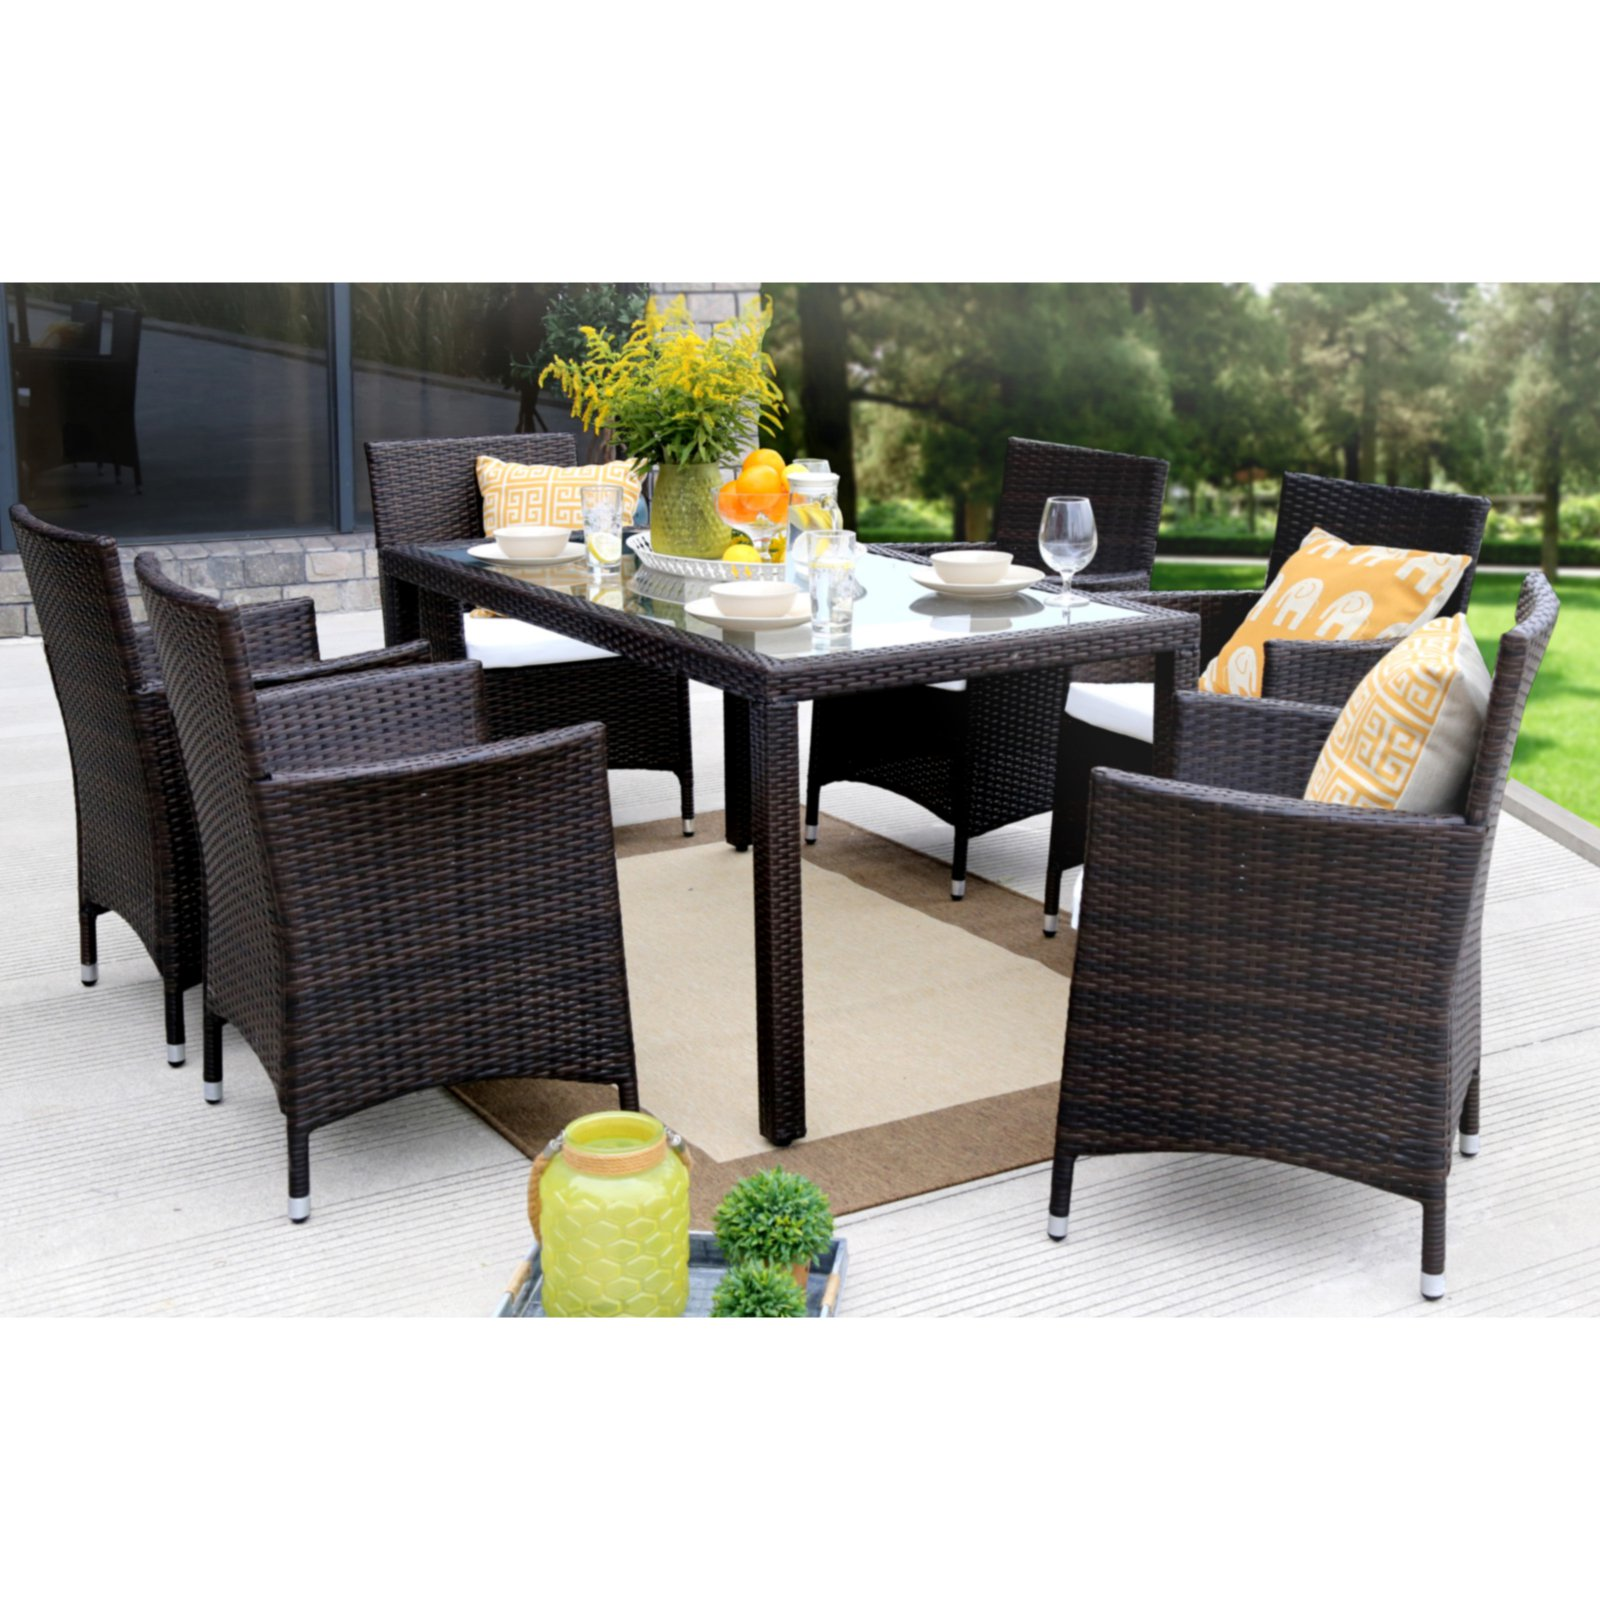 Baner Garden Outdoor Furniture Complete Patio Cushion PE Wicker Rattan Garden Dining Room Set, Brown, 7-Pieces by Overstock